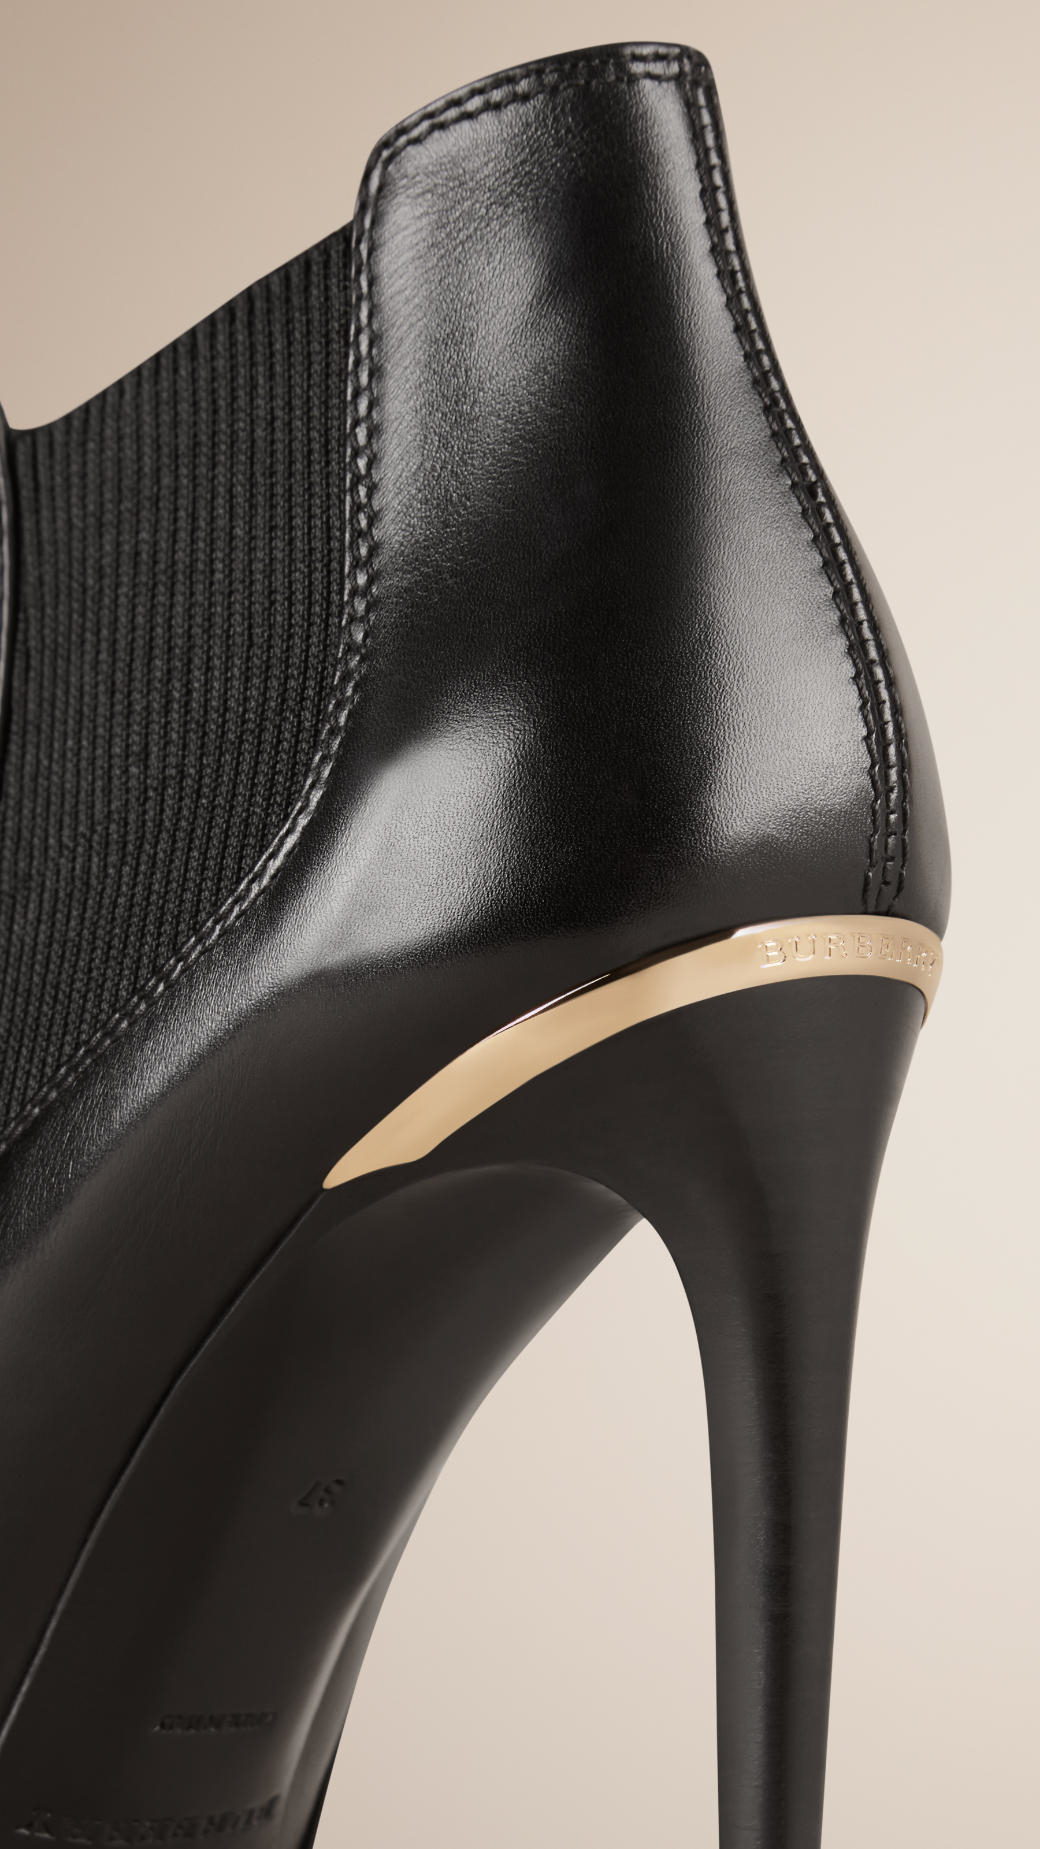 Burberry Peep-toe Leather Ankle Boots in Black